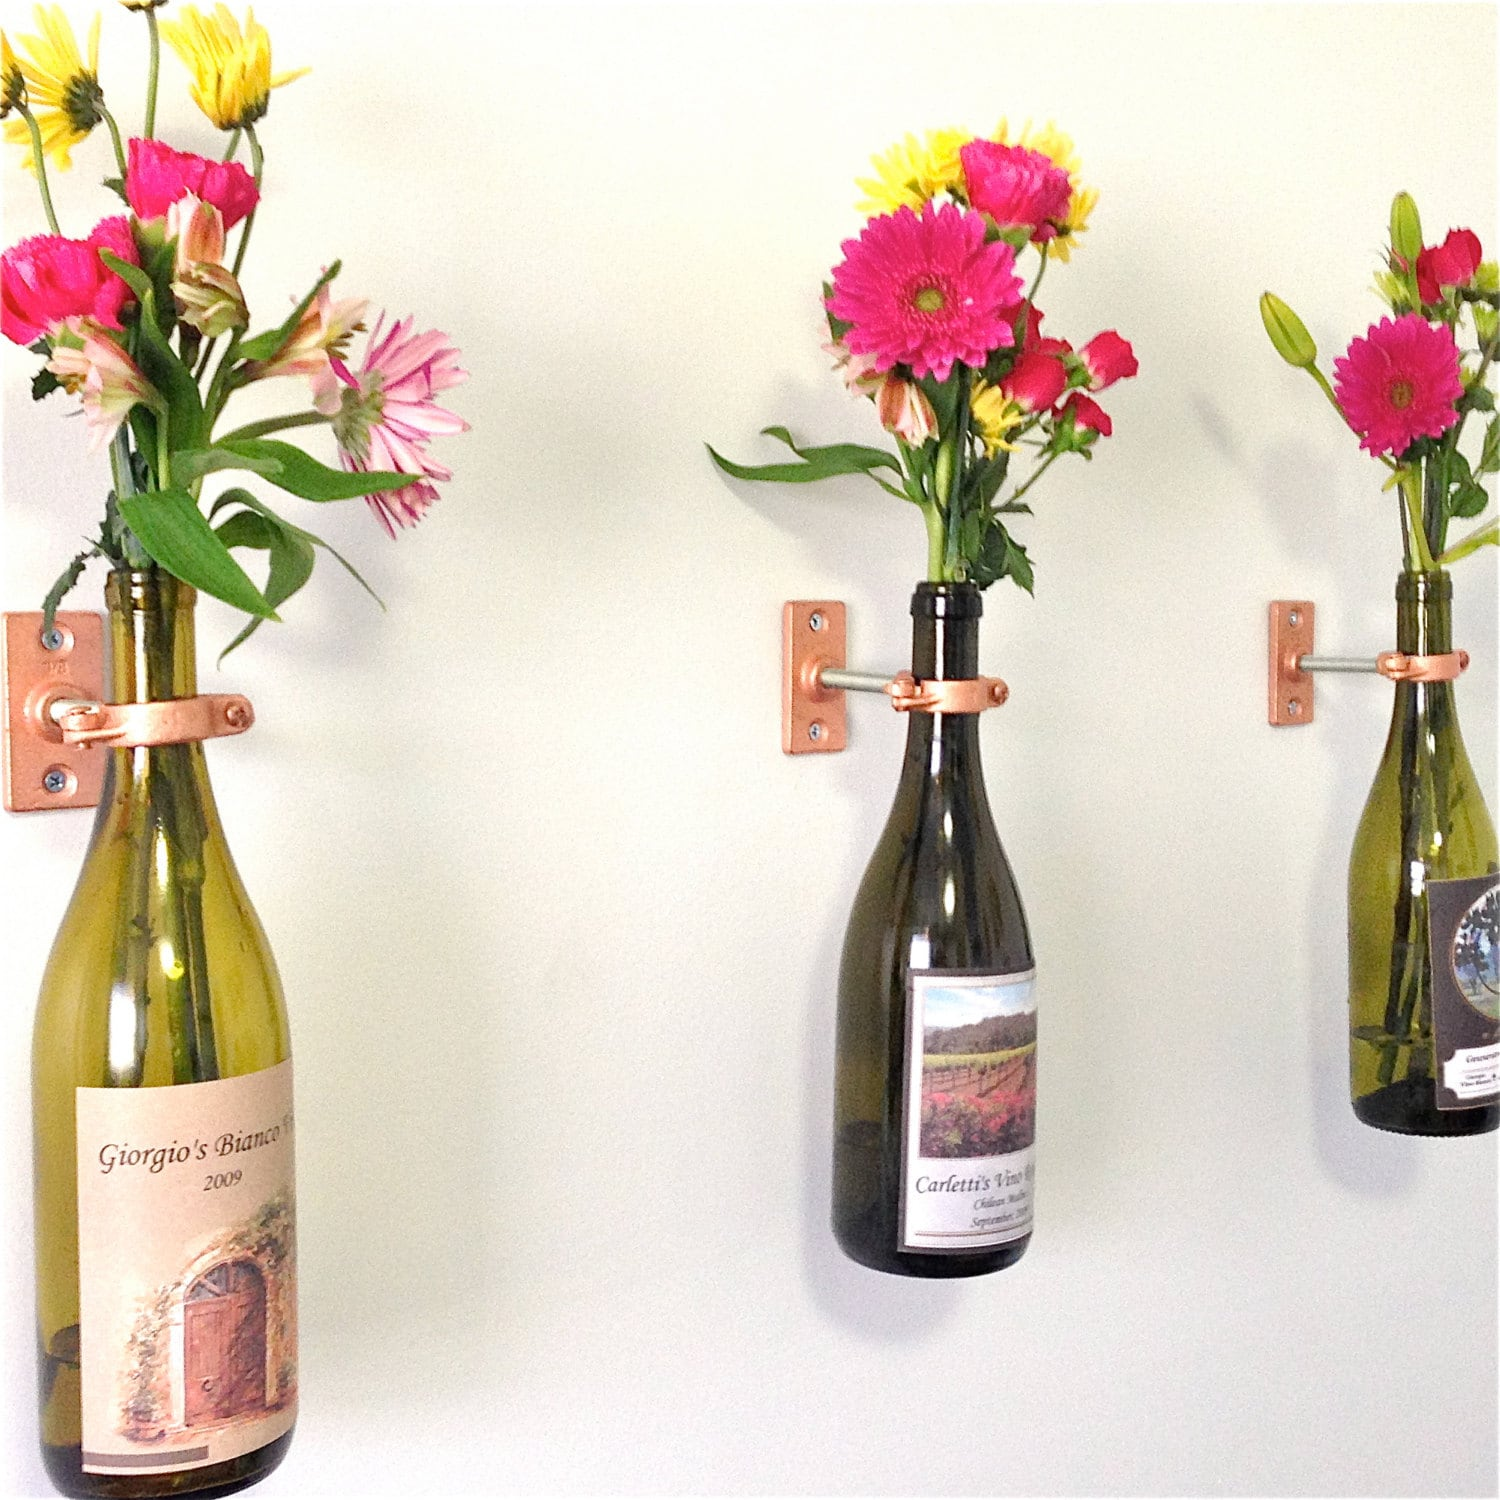 Hardware only 4 wine bottle wall flower vase kits diy or - Great decorative flower vase designs ...